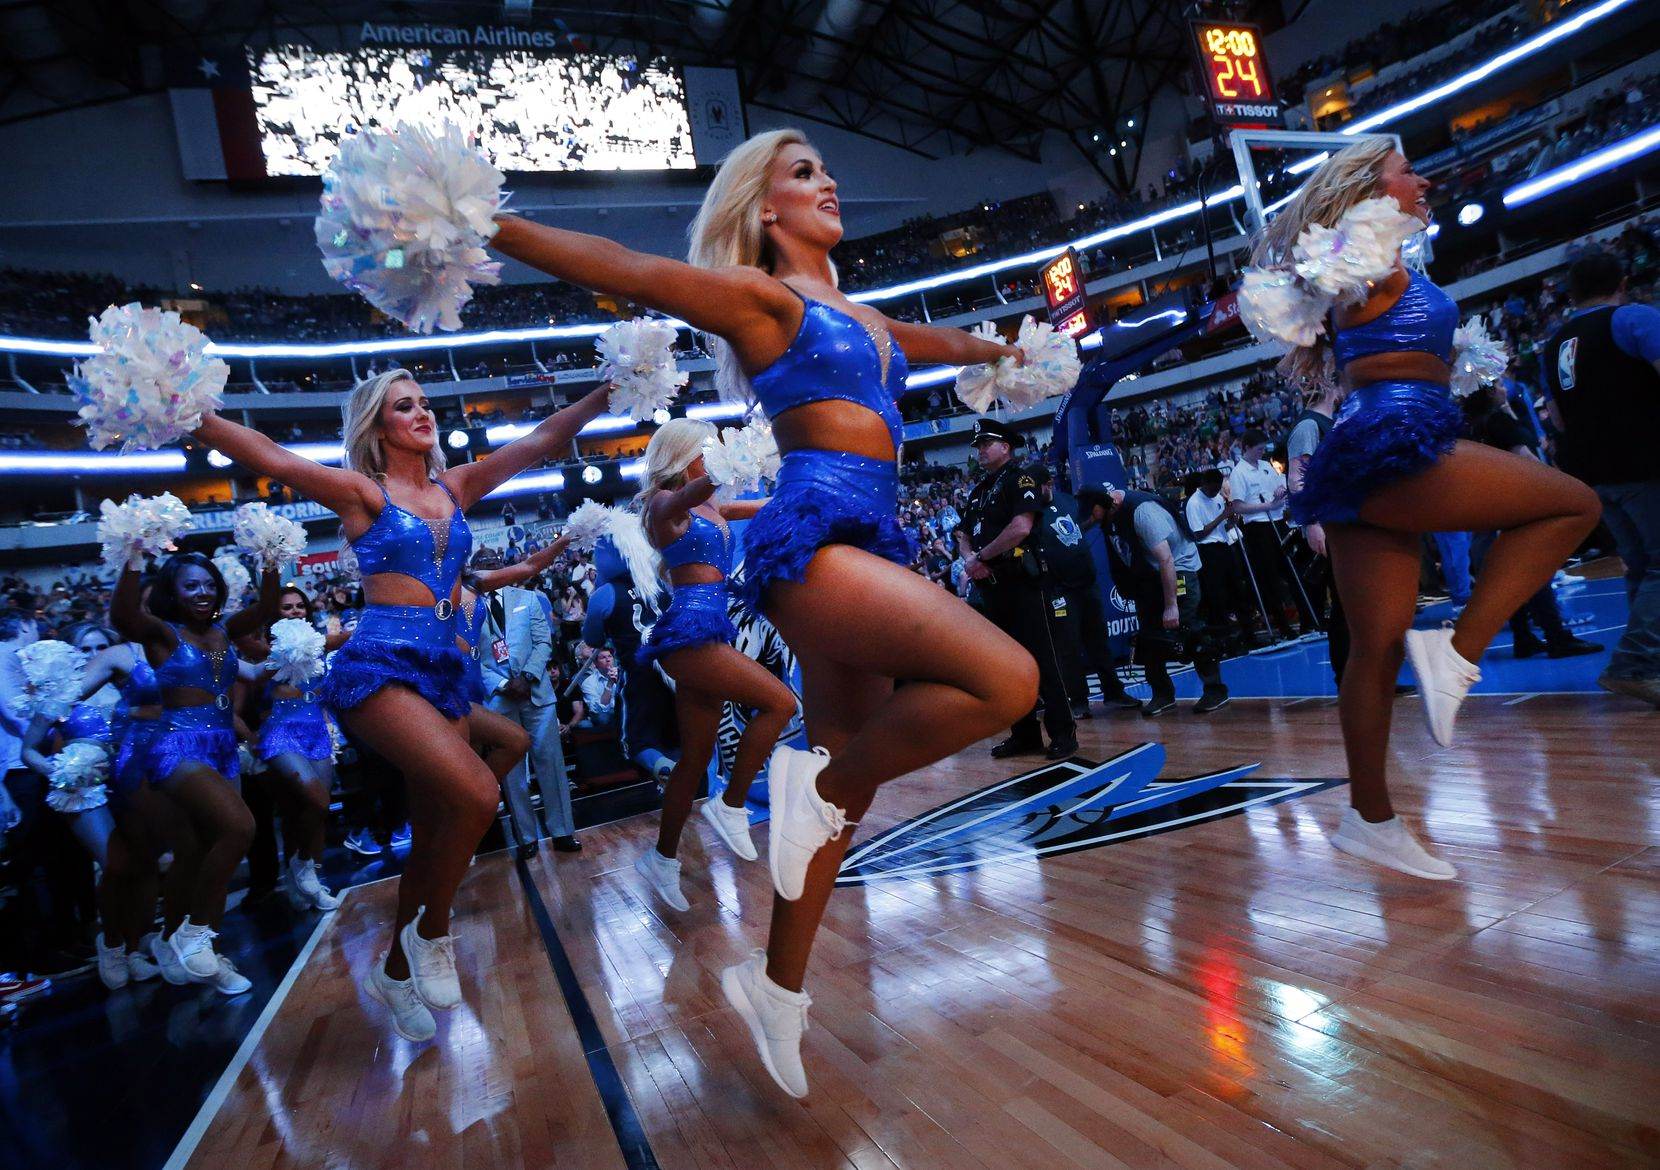 The Dallas Mavericks Dancers skipped onto the court for player introductions before the team faced the Memphis Grizzlies at American Airlines Center in Dallas on April 5.